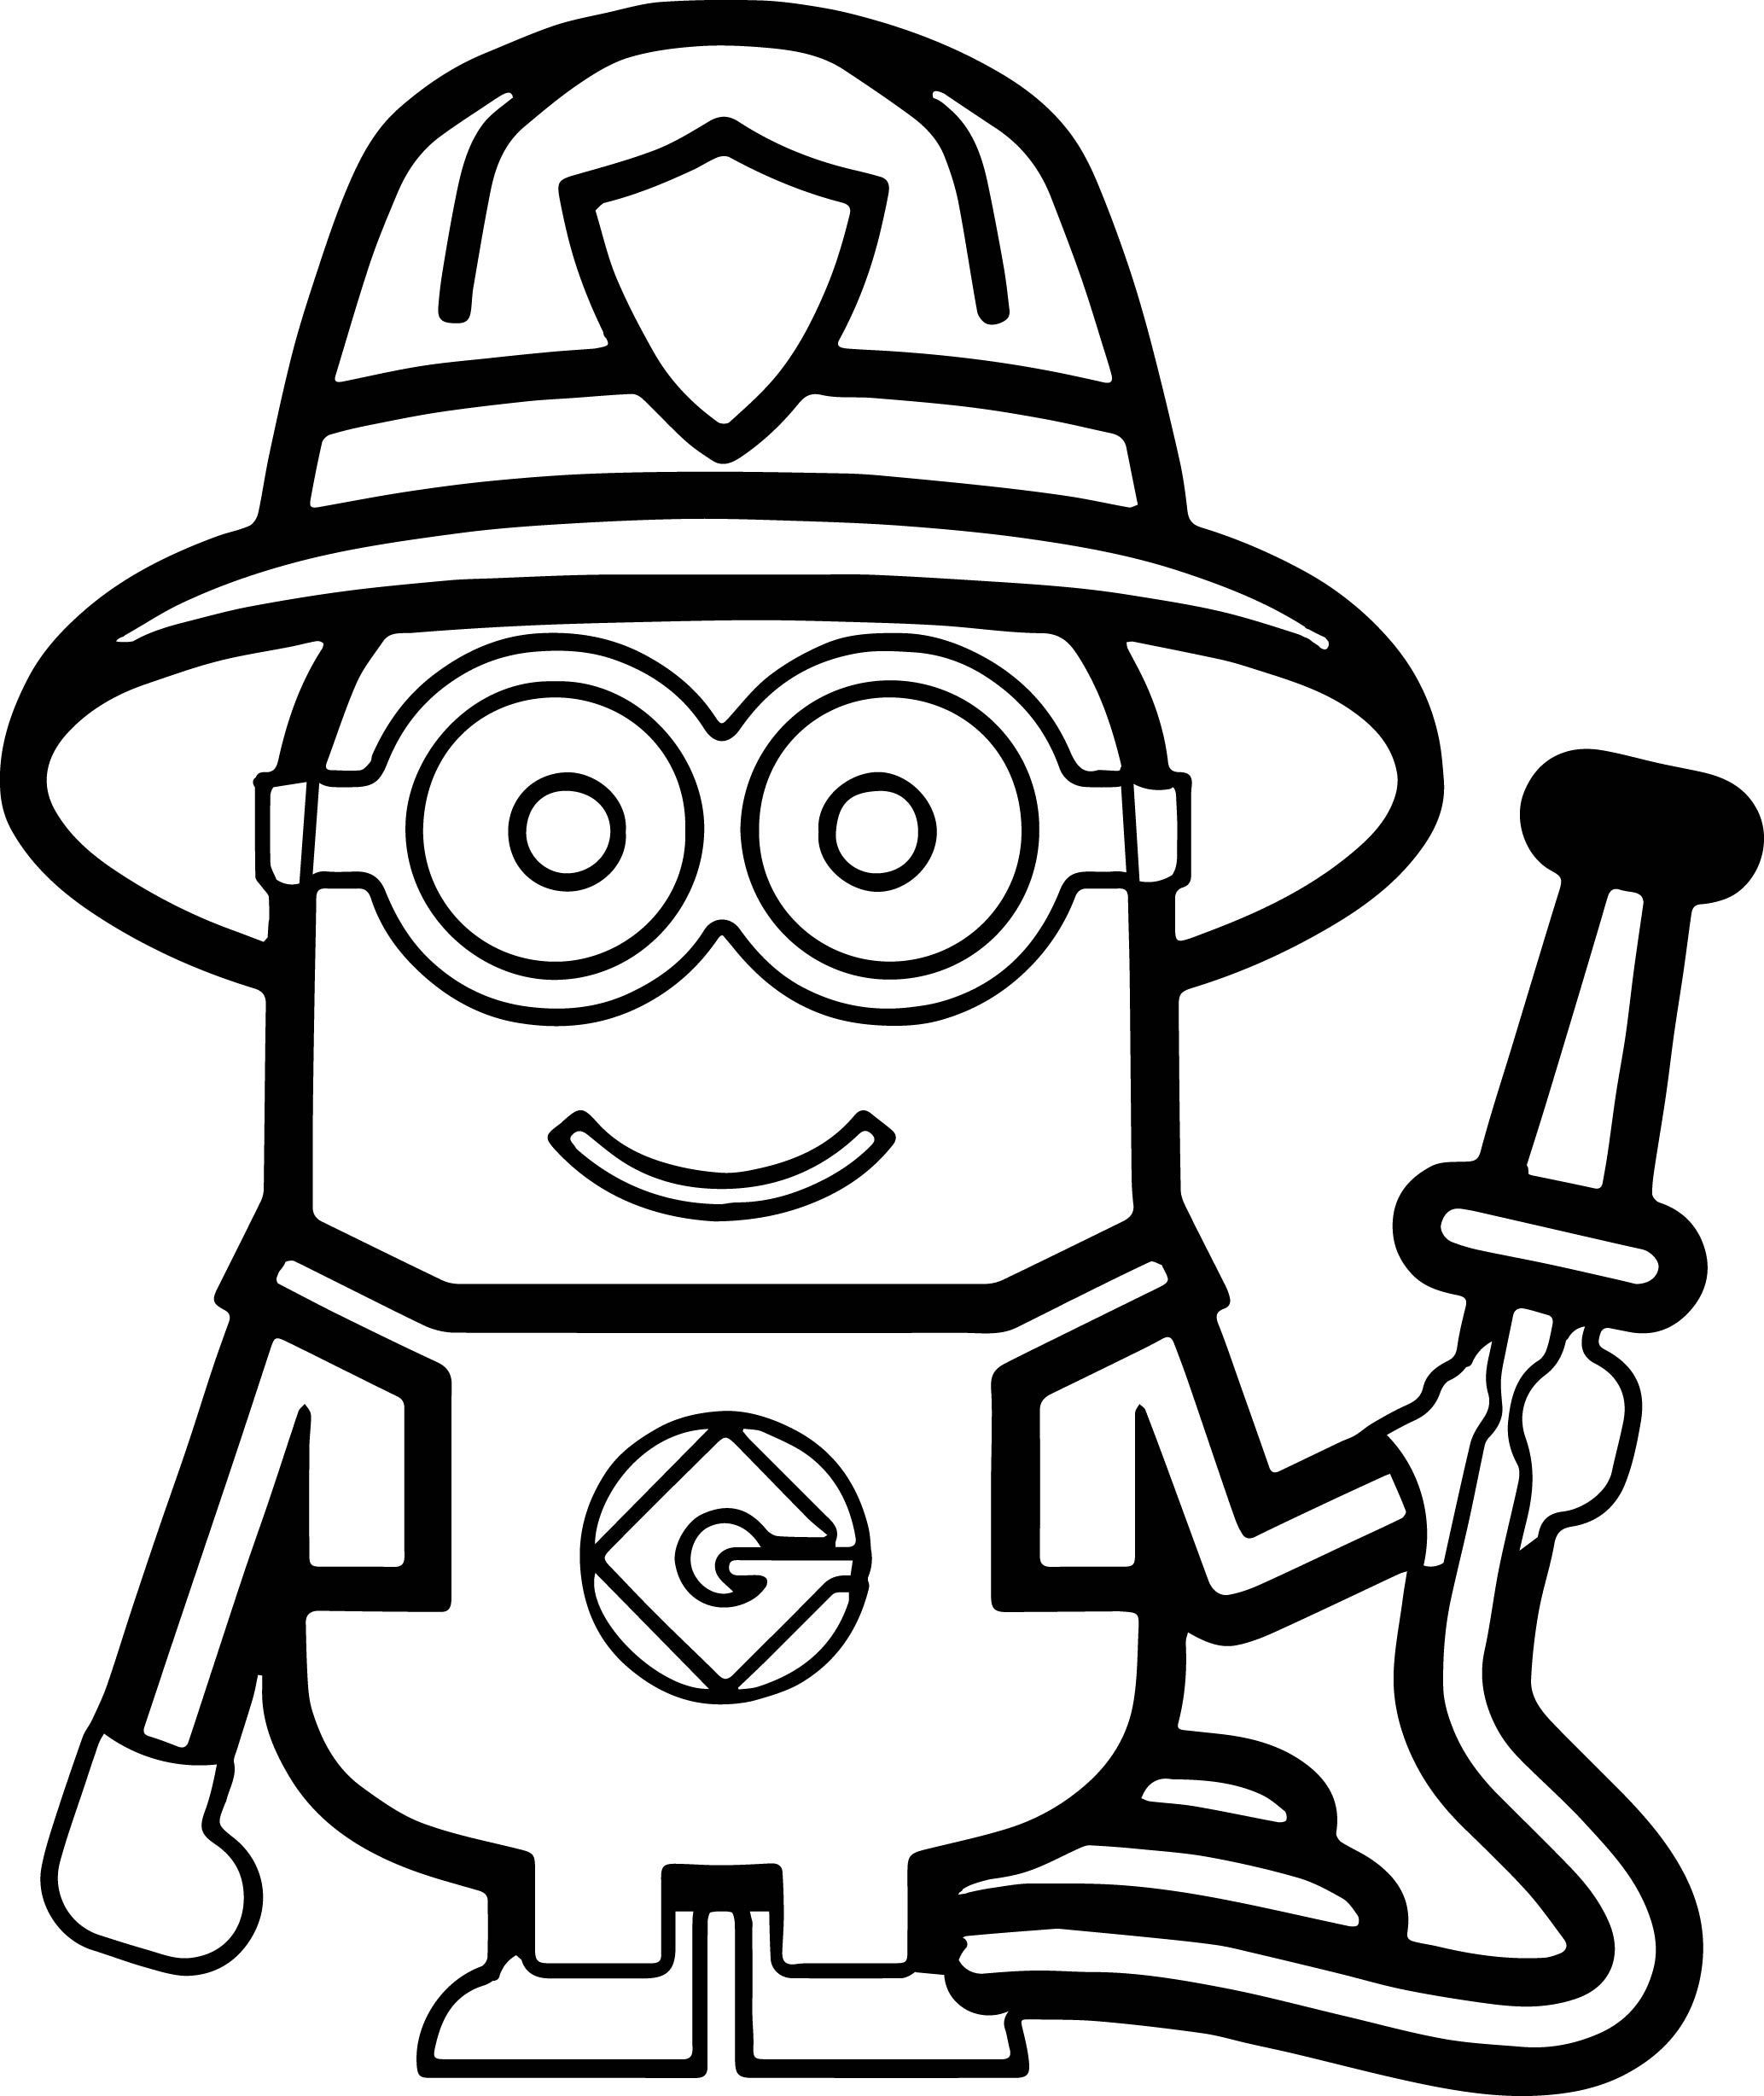 fireman coloring pages firefighter helmet coloring page at getcoloringscom coloring fireman pages